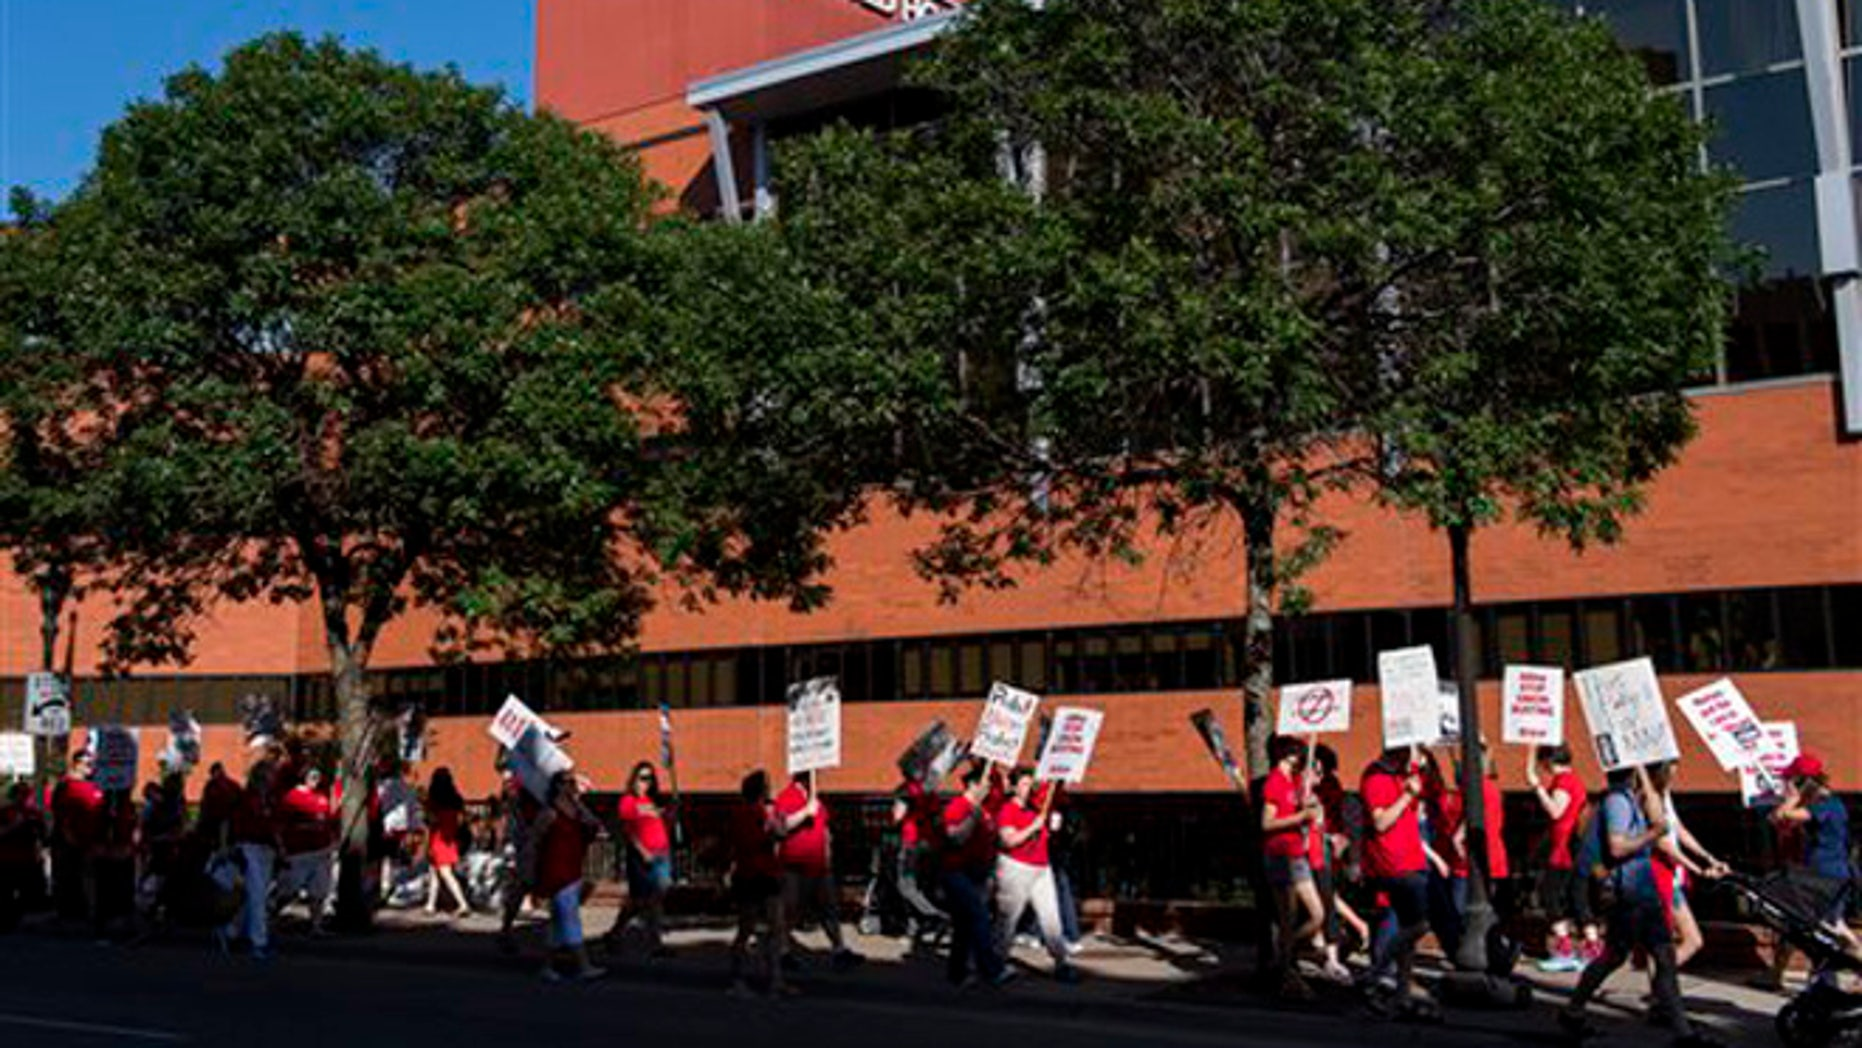 Picketers walk in front of United Hospital in St. Paul, Minn., Sunday, June 19. 2016.